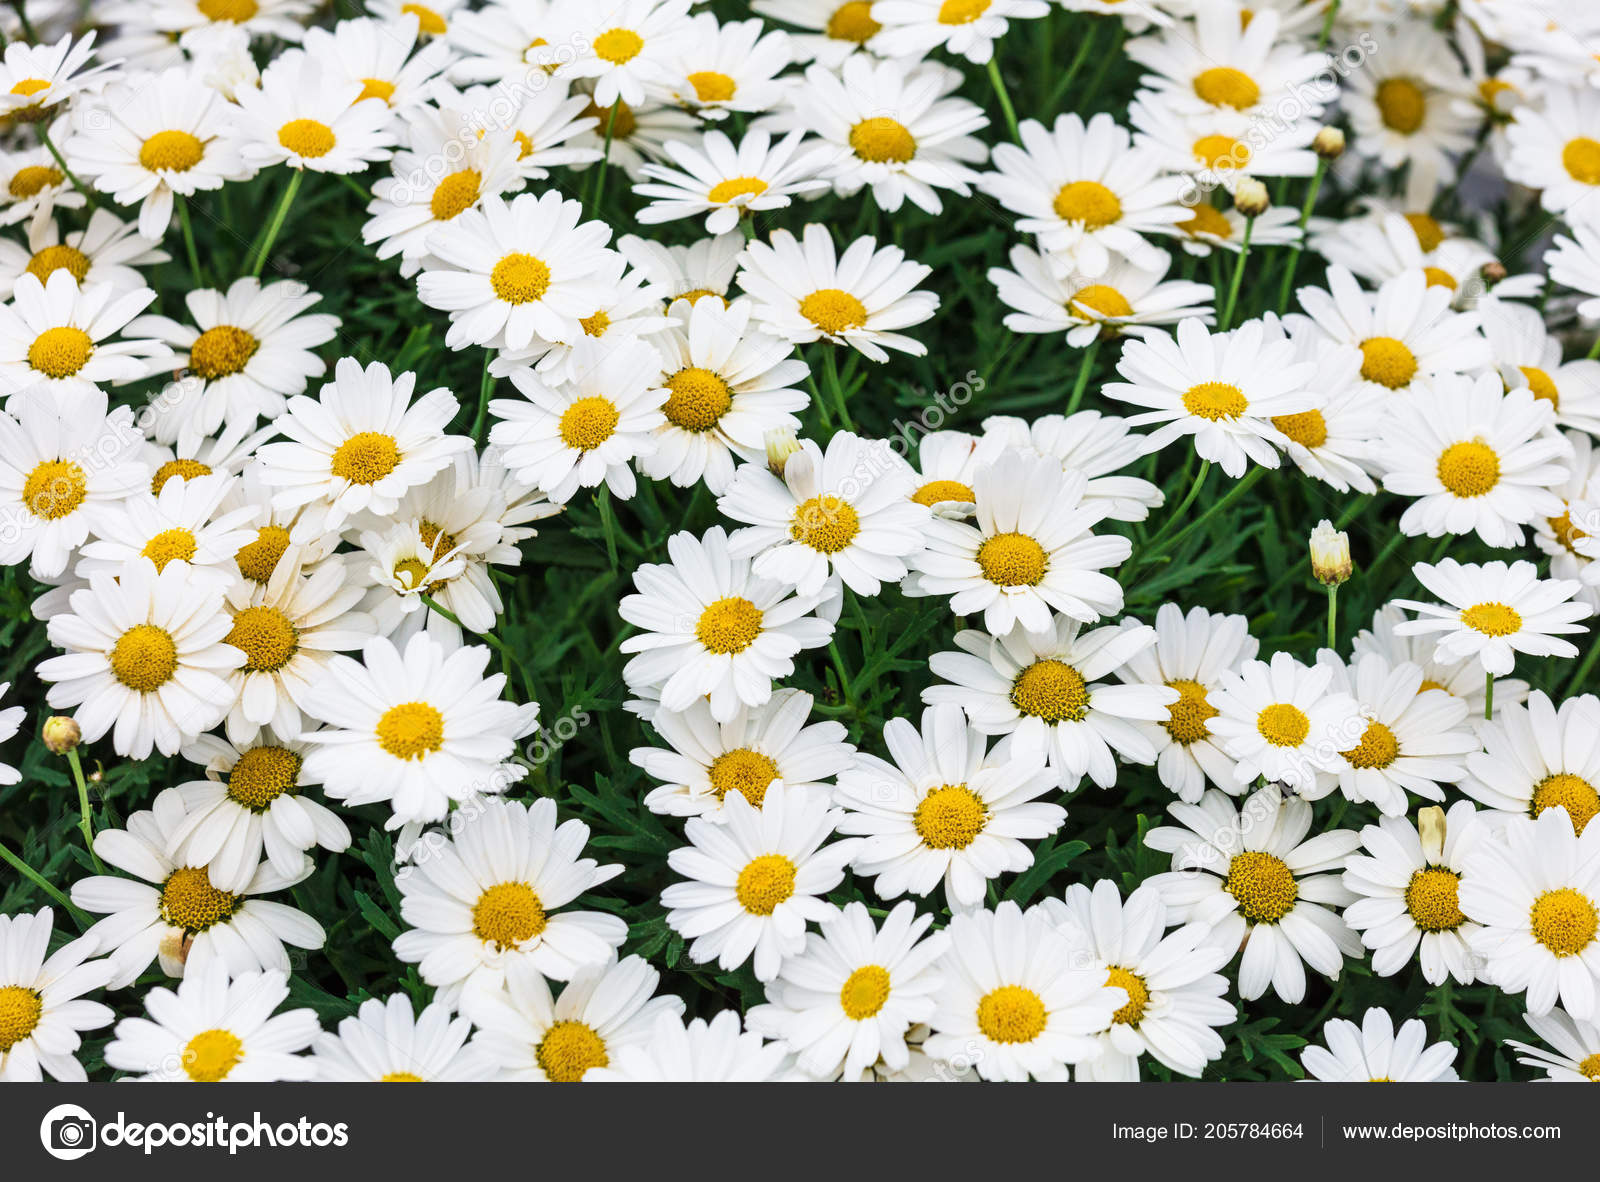 Daisy Flower Background Daisy Flower Asteraceae Family Stock Photo